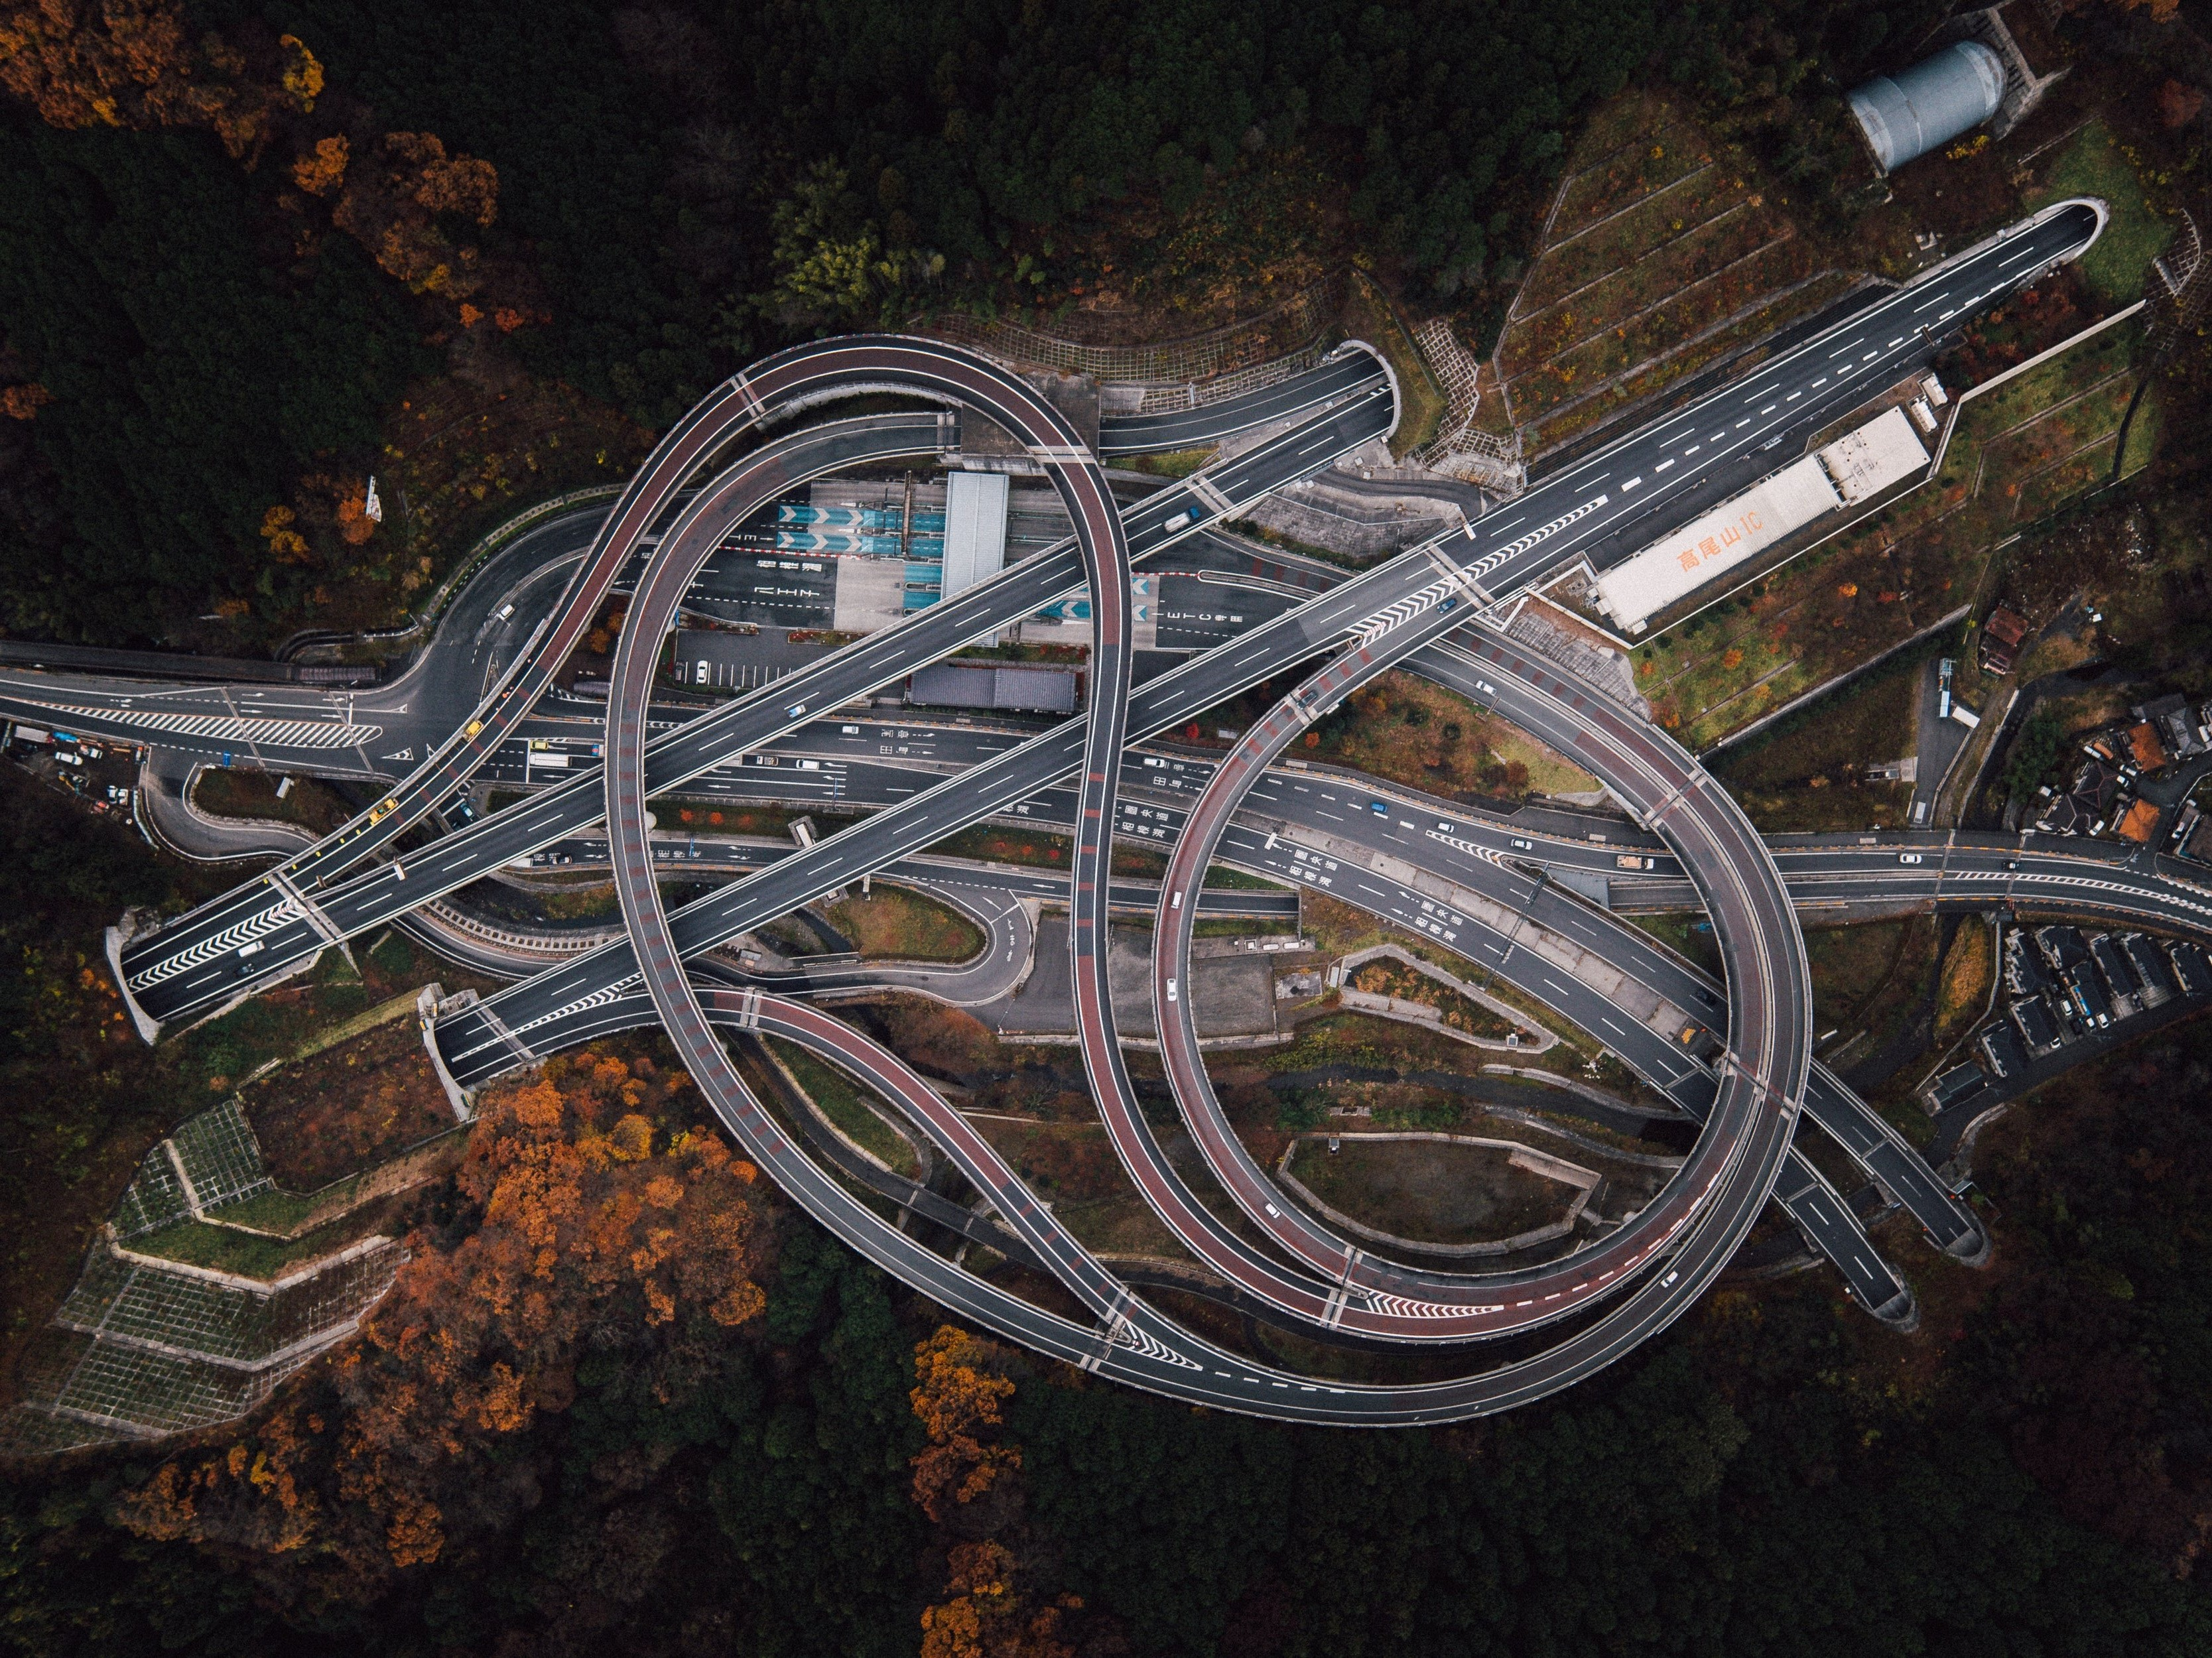 General 3335x2500 aerial view trees highway road fall forest crossroads Japan tunnel car drone photo bird's eye view